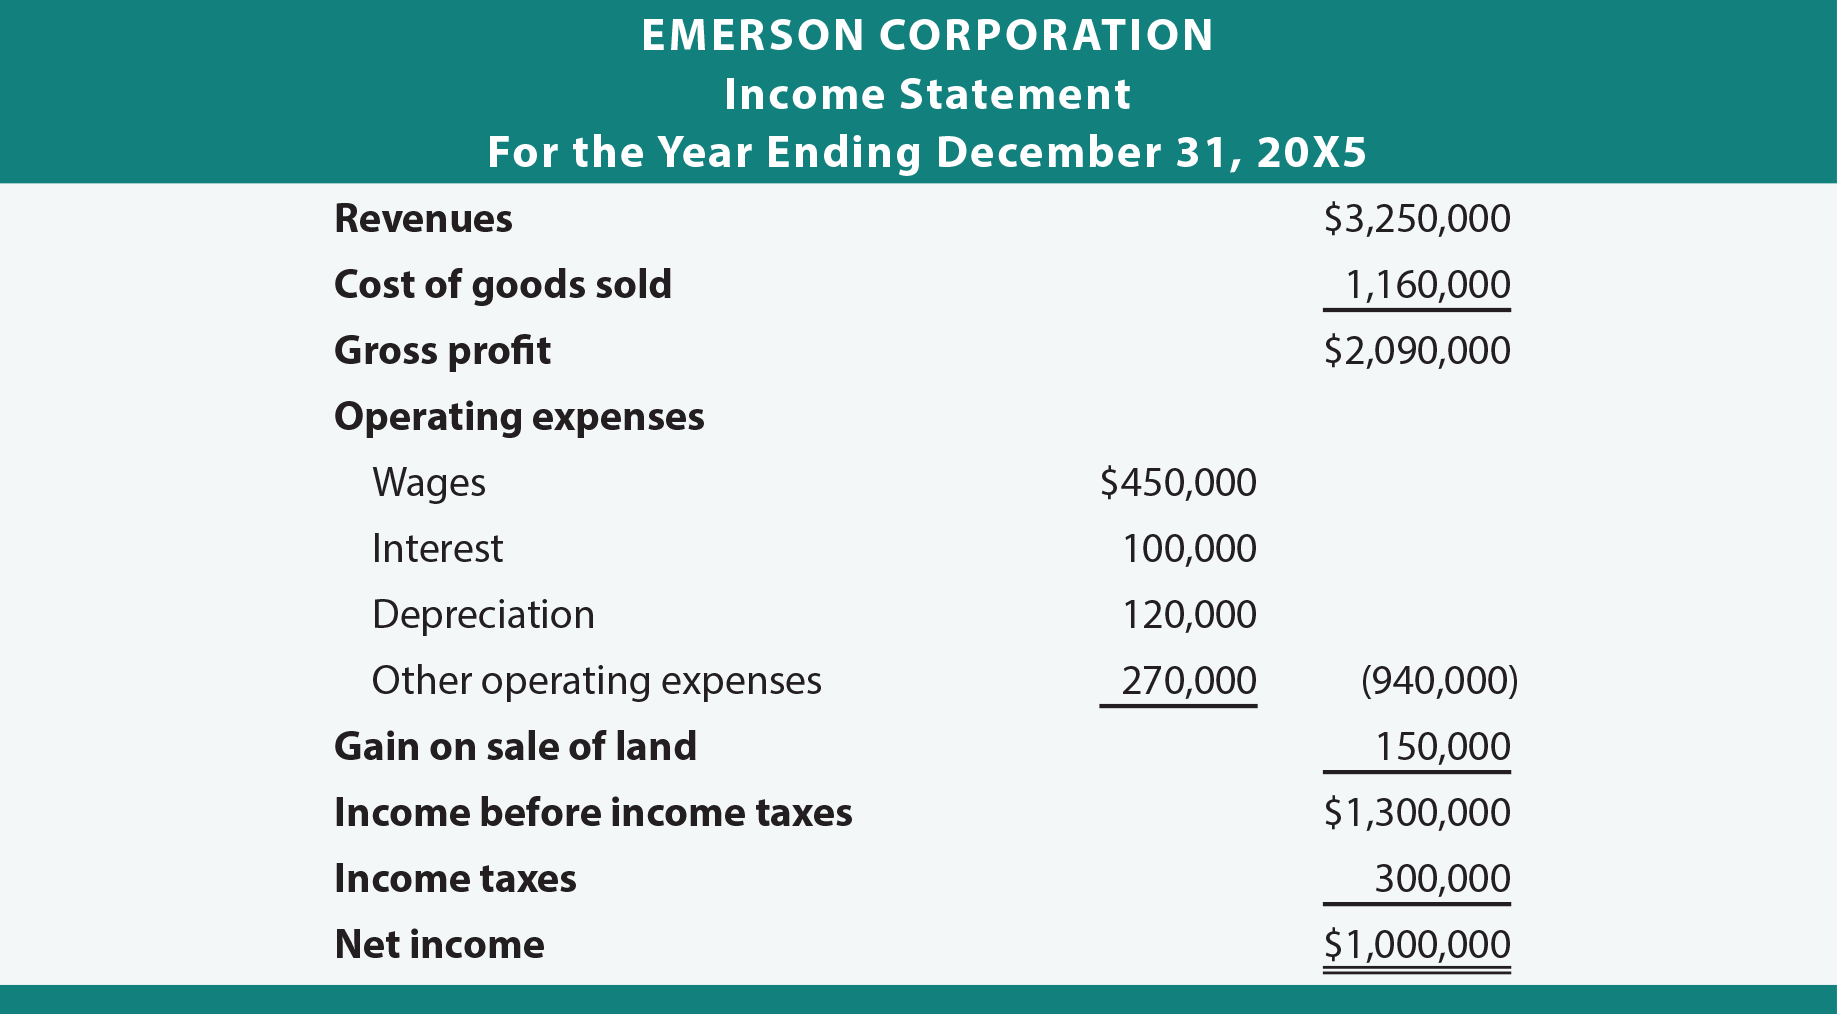 Emerson Corporation Income Statement